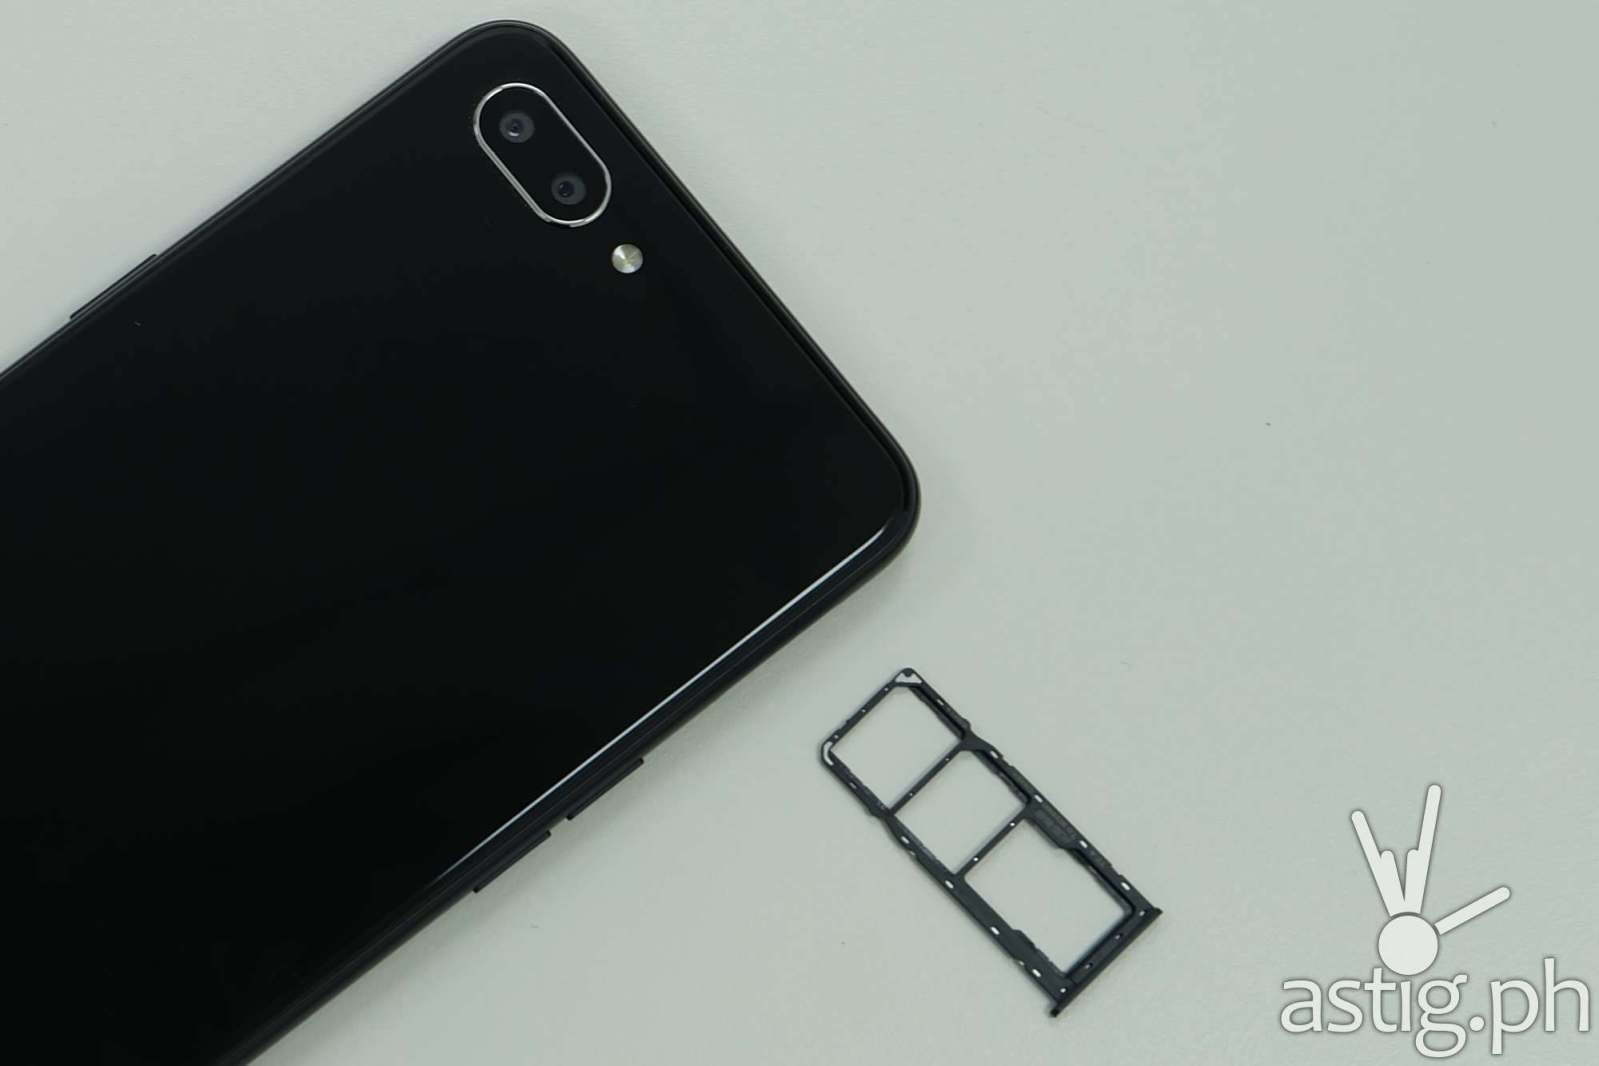 Rear camera with dual SIM tray and MicroSD expansion - Realme C1 Philippines